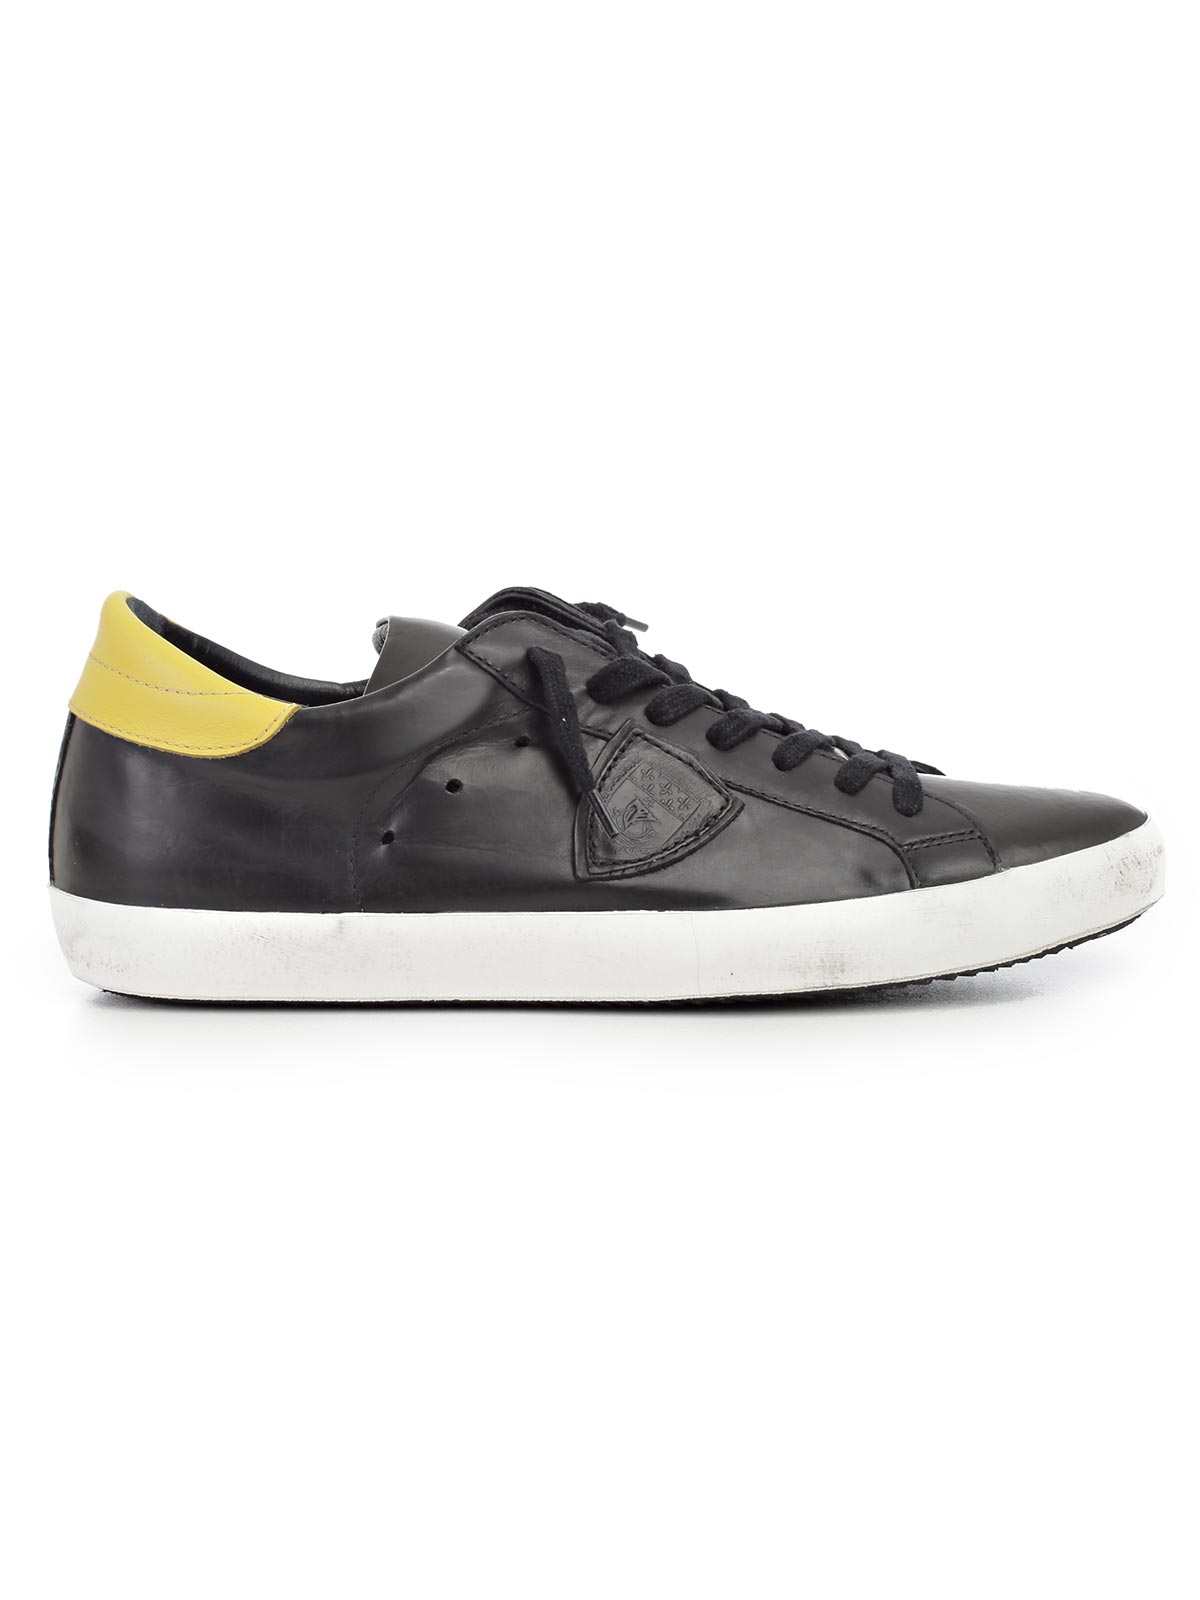 Picture of PHILIPPE MODEL FOOTWEAR SNEAKERS CLASSIC BASSA